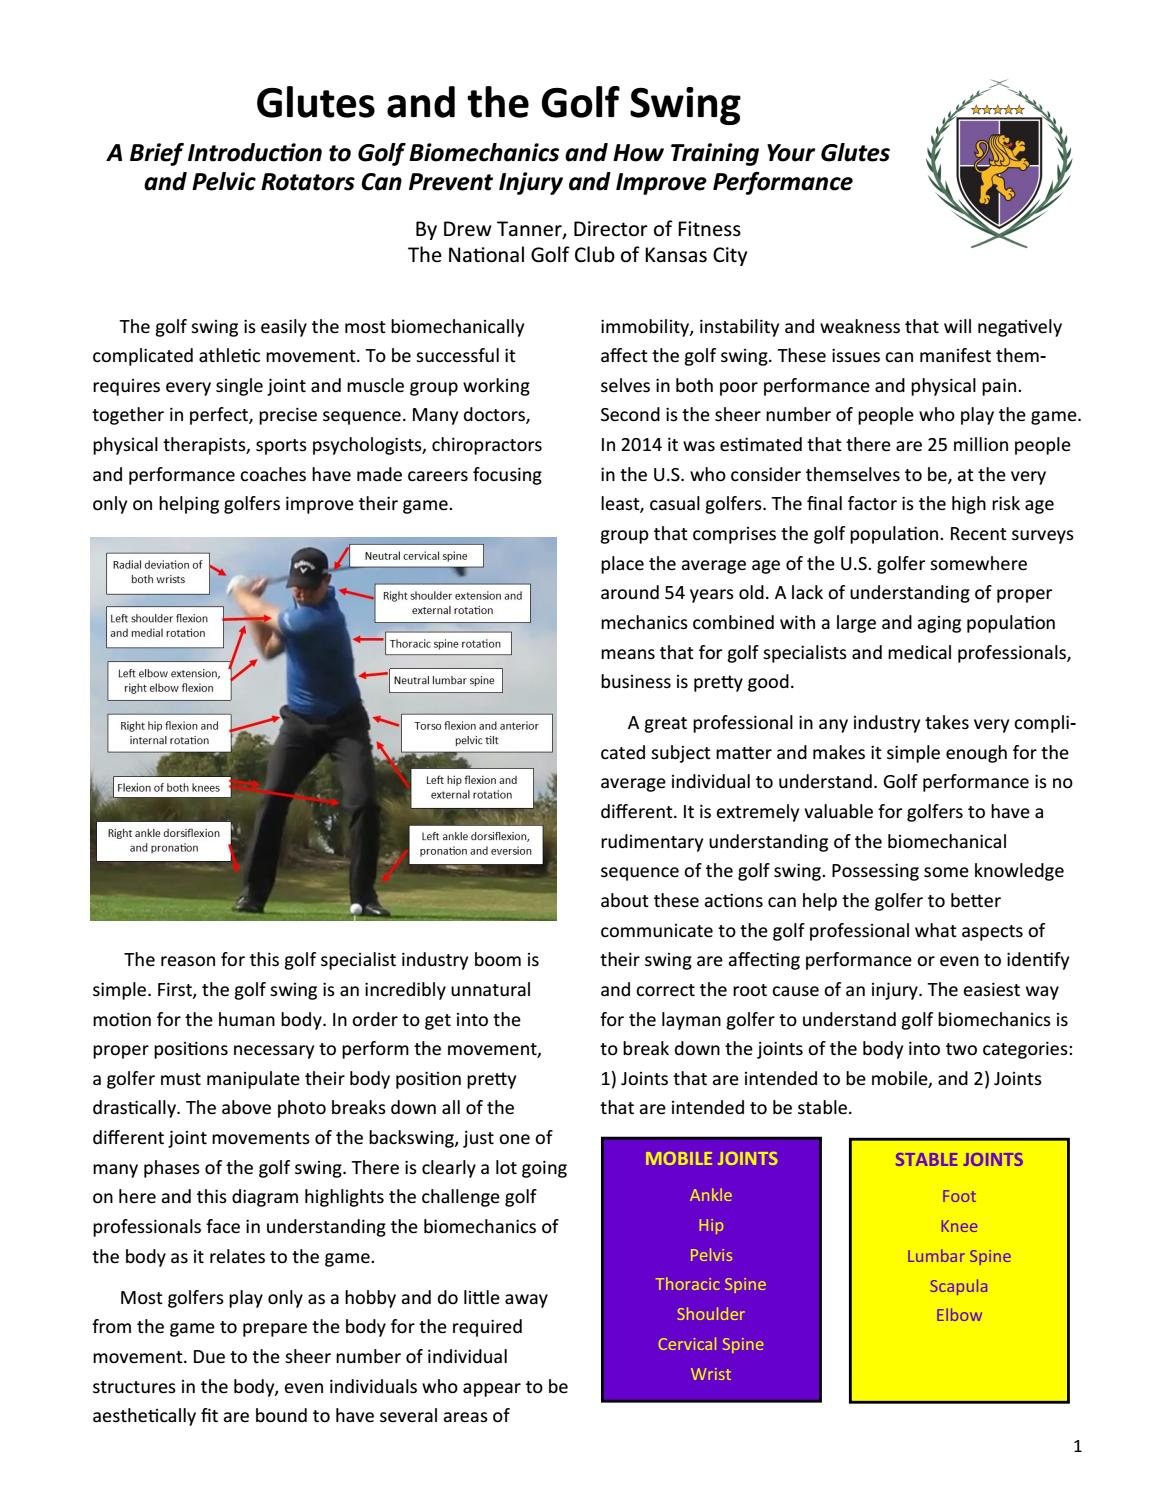 Hip and Pelvic Power by Drew Tanner, The National Golf Club